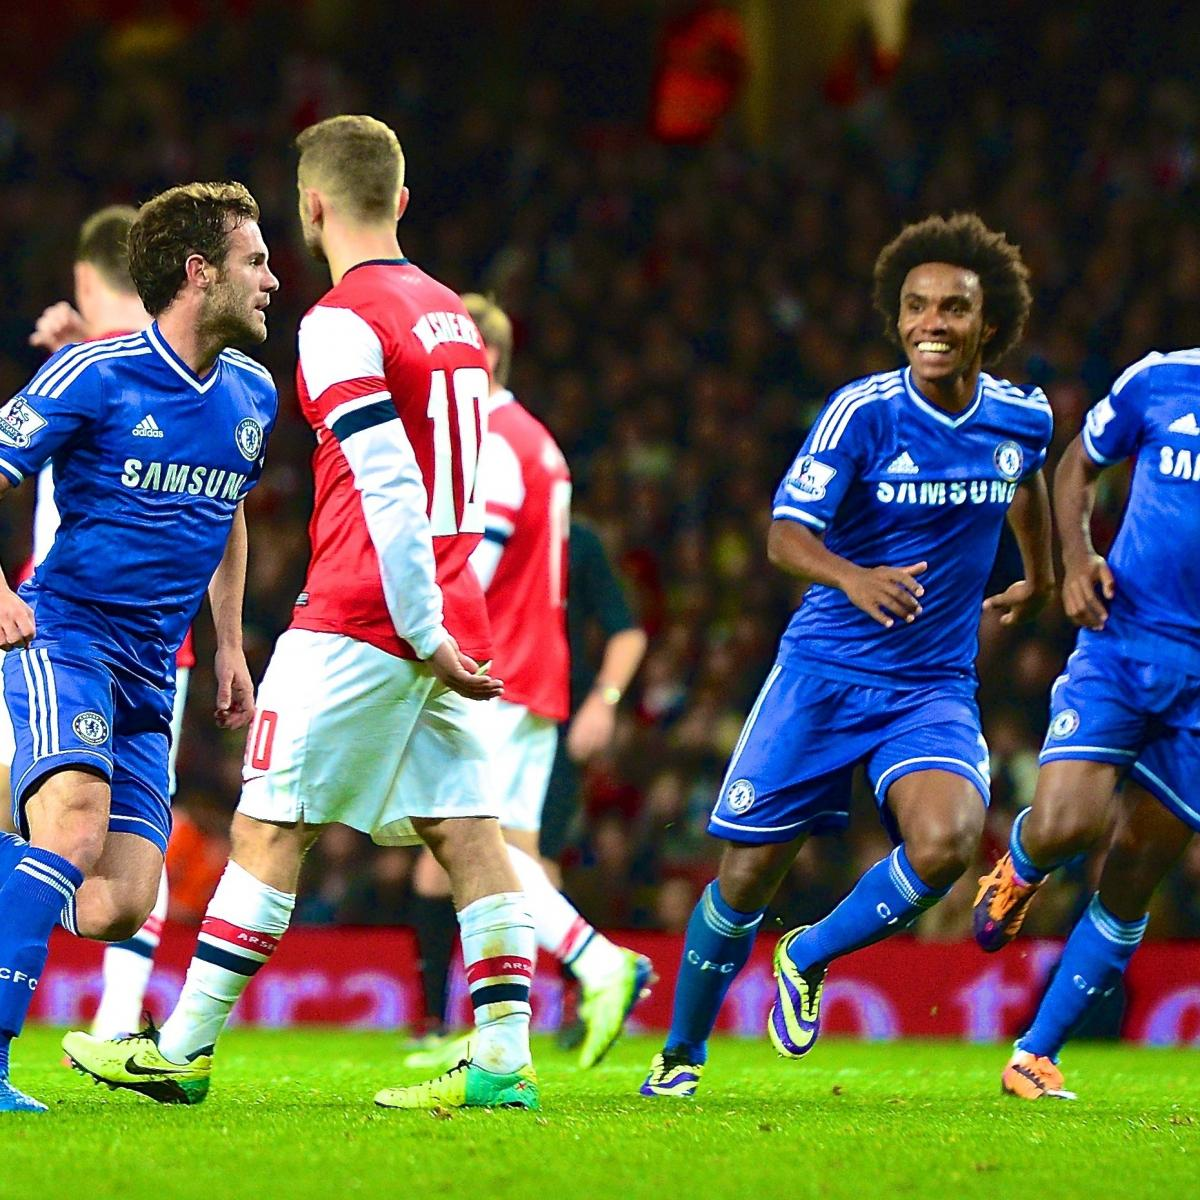 Capital One Cup Results: Analysis for Arsenal vs. Chelsea and All ...